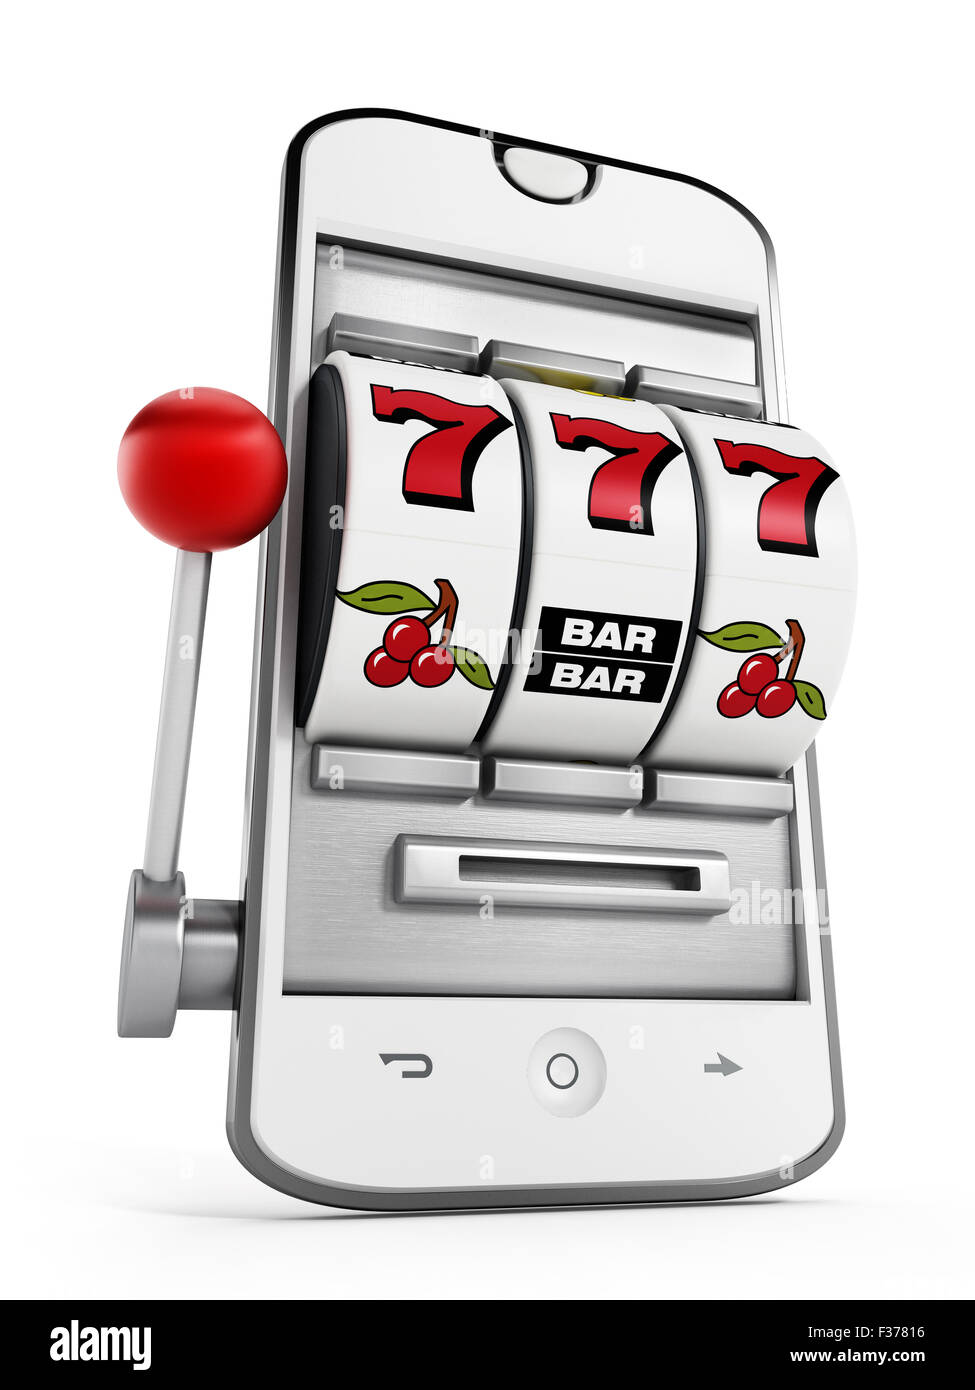 Gambling machine pointing jackpot on smartphone screen. - Stock Image